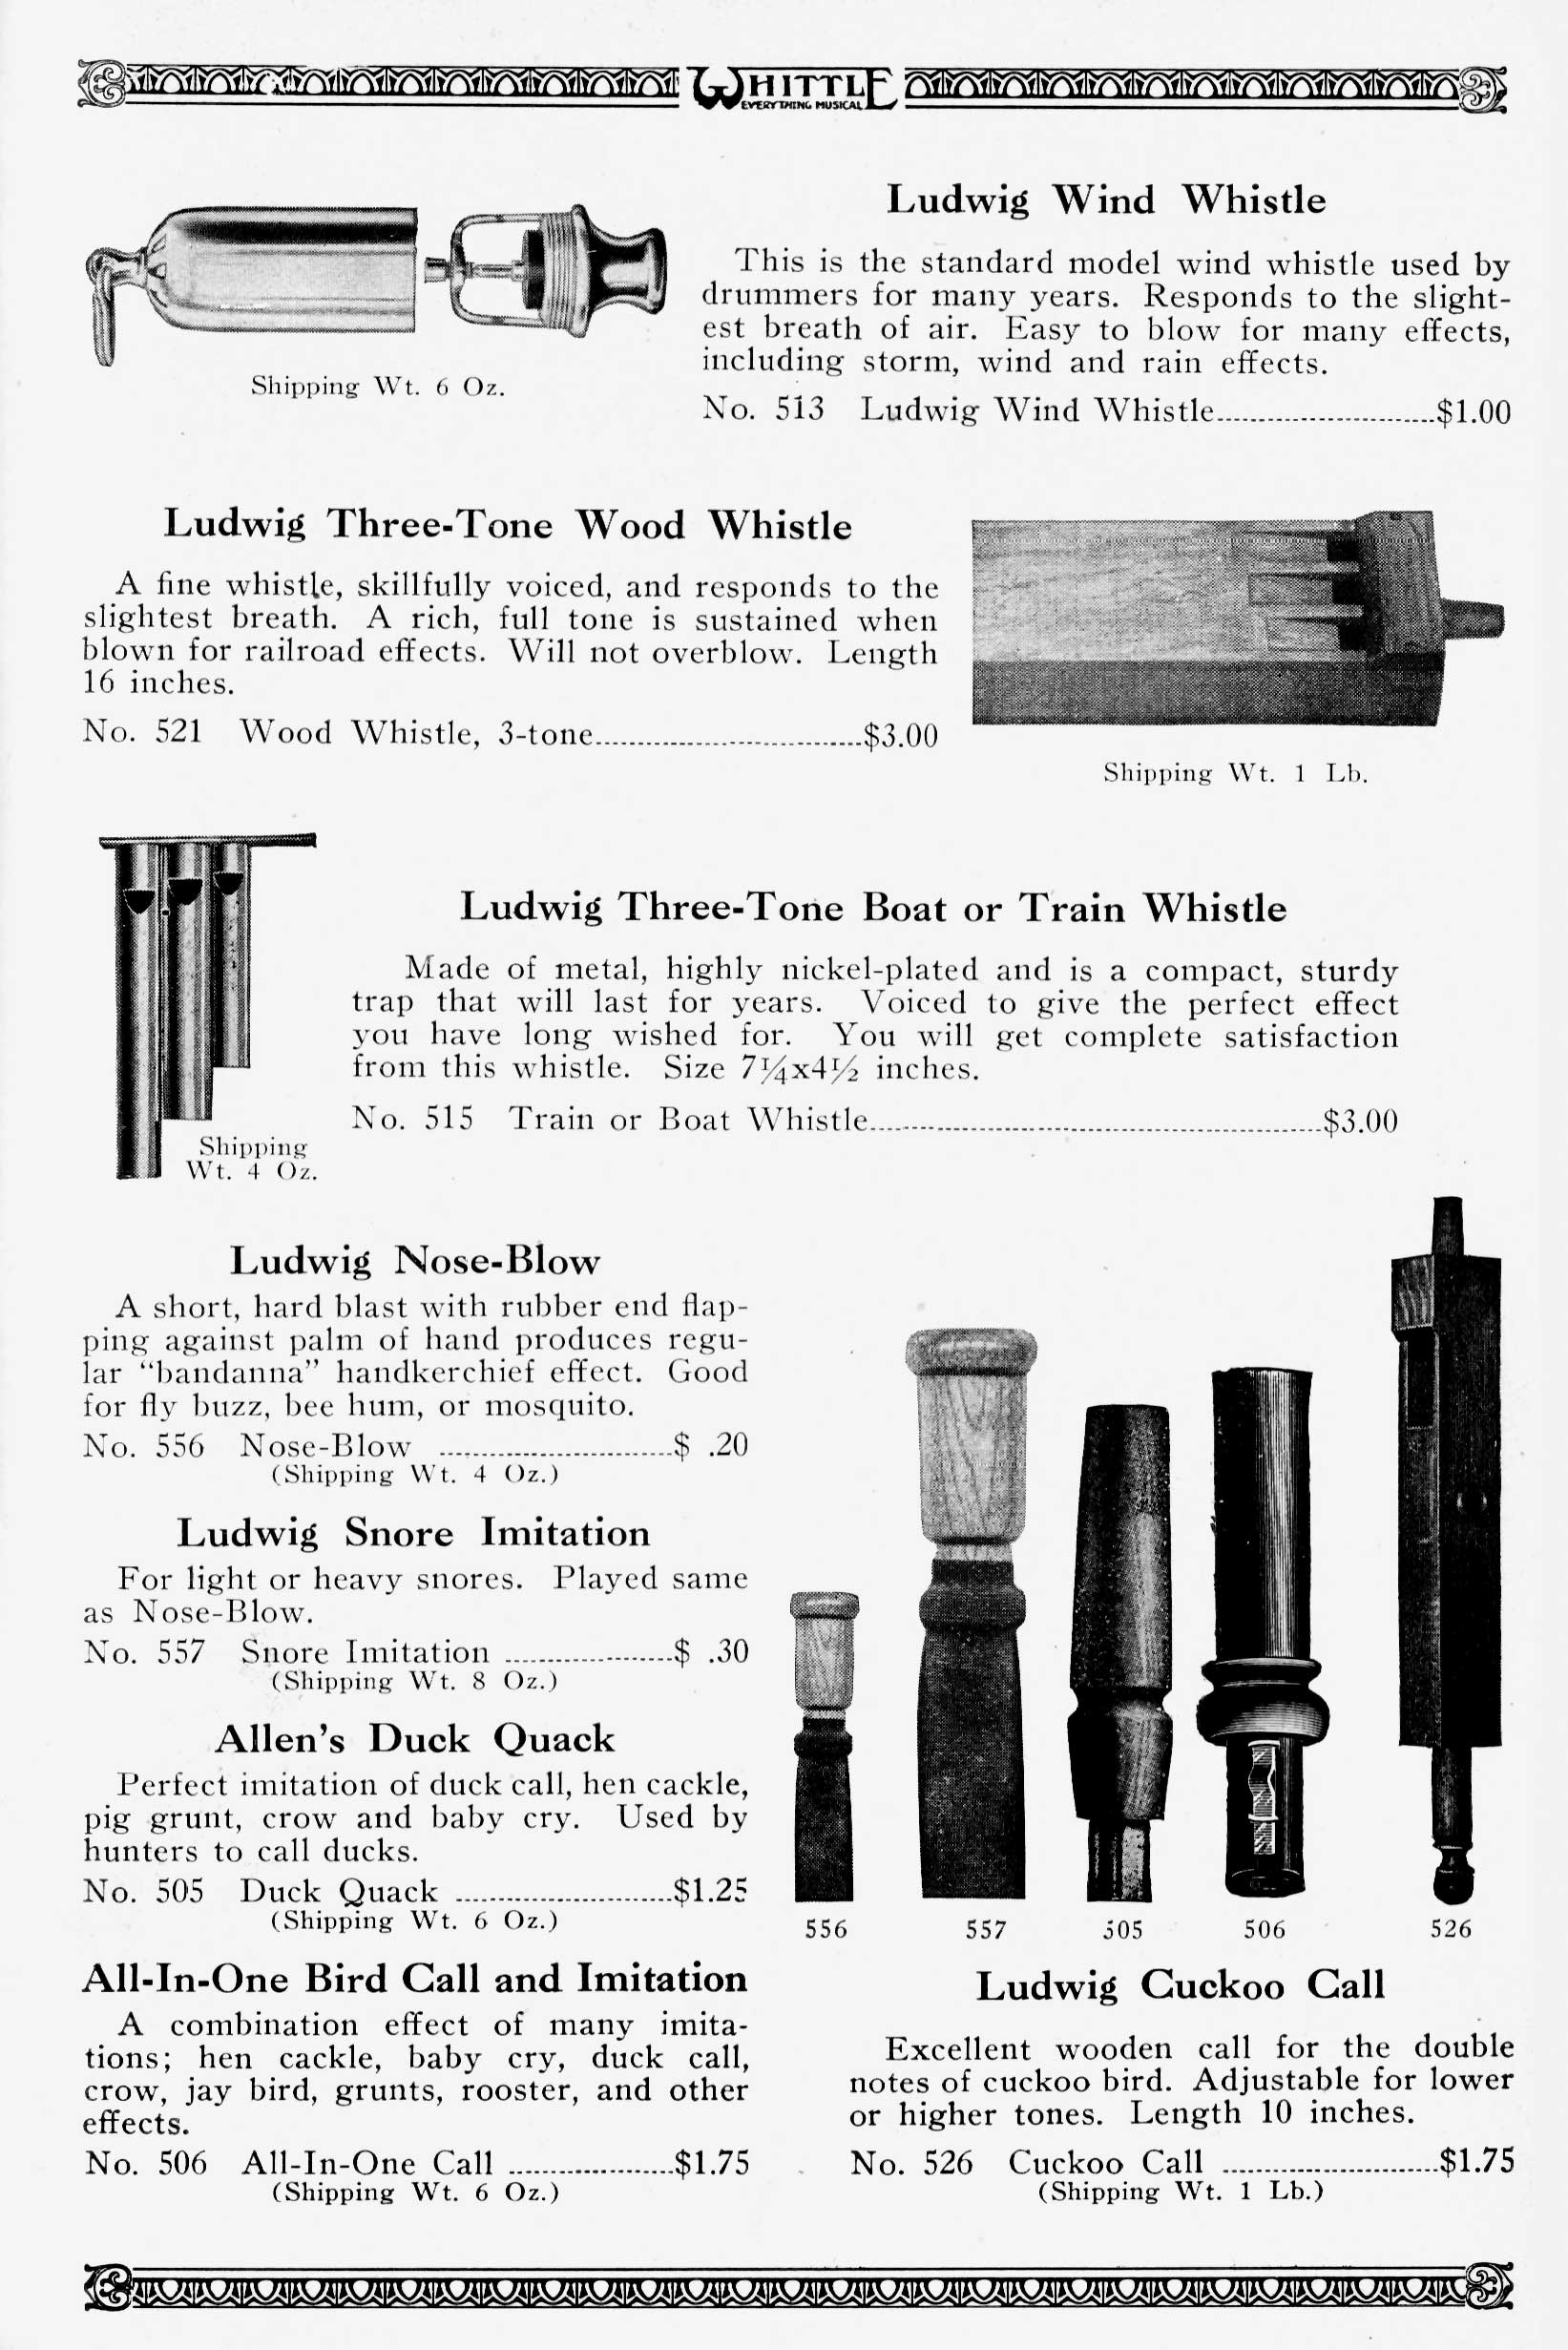 The Sounds of Silents - Whittle Music, 1927 - The Catalog Blog